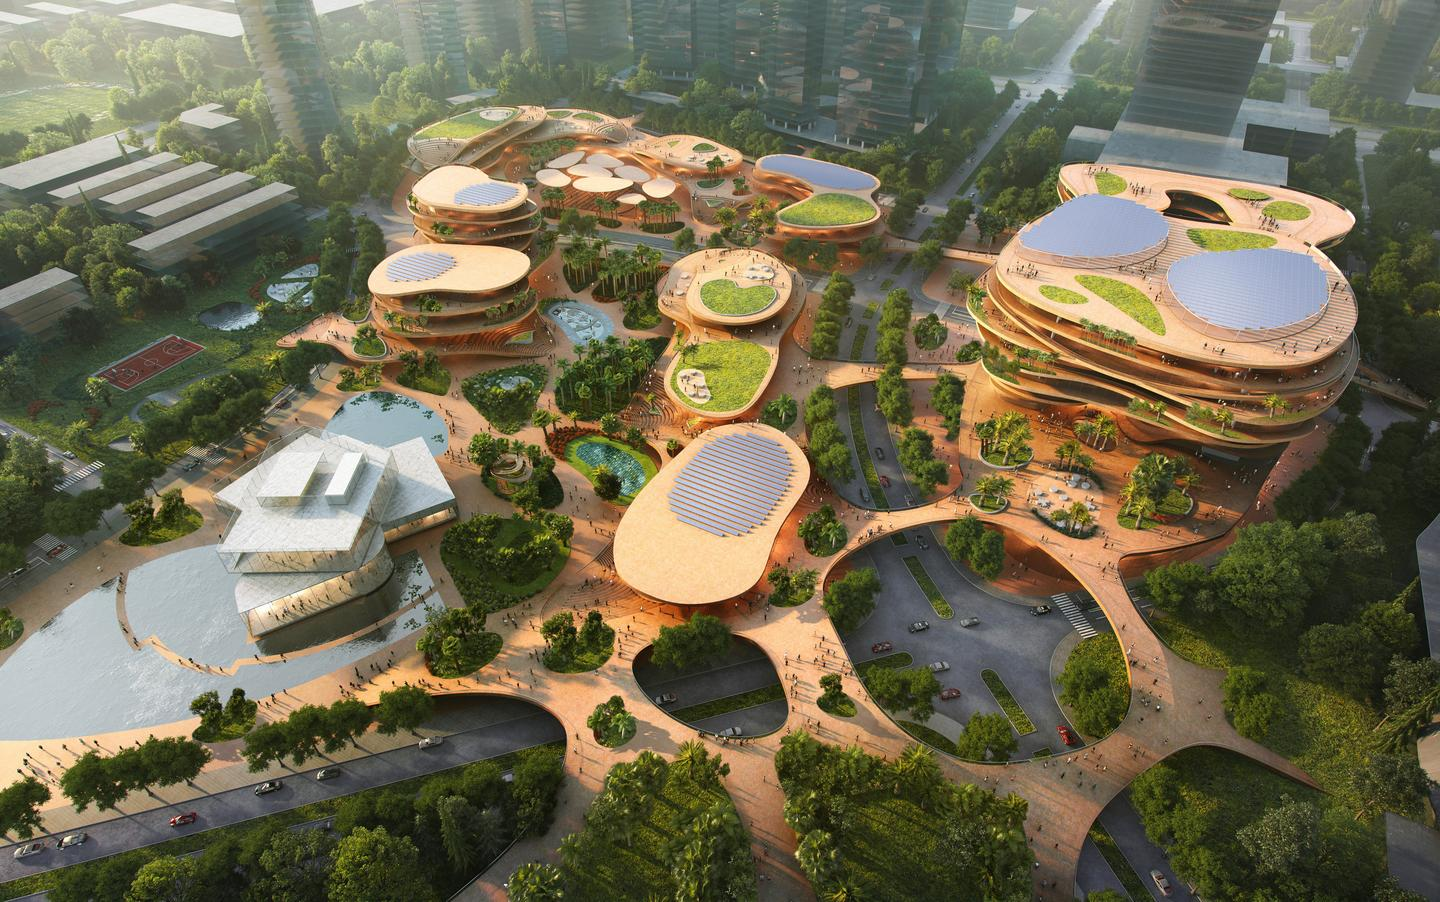 Shenzhen Terraces was recently chosen as the winner of an architecture competition hosted by Shimao Group